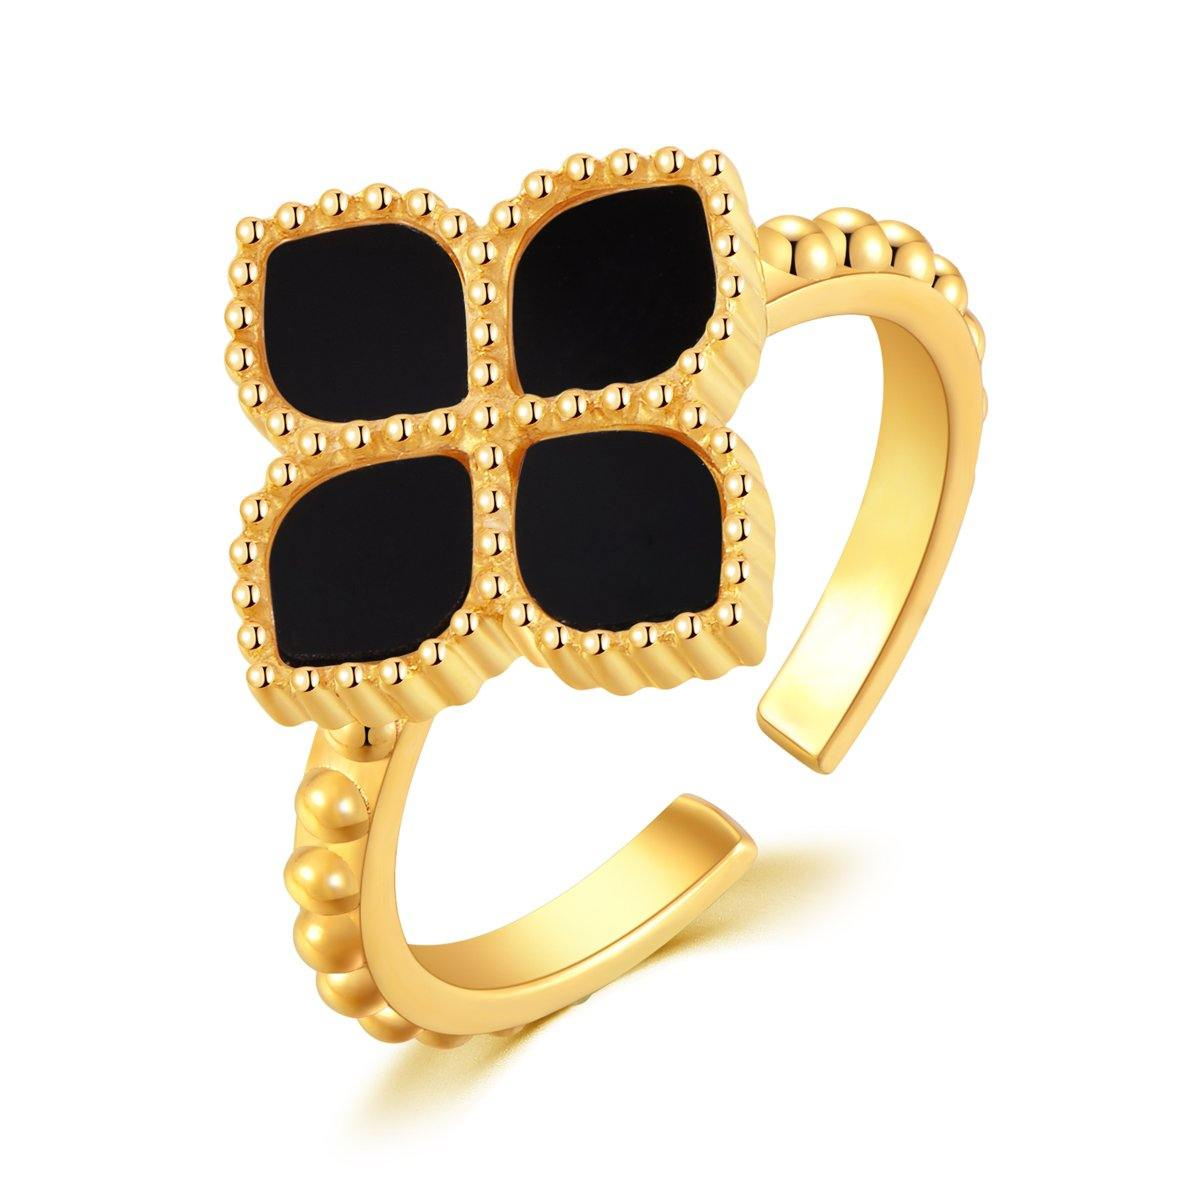 Joory / Ring Black Gold